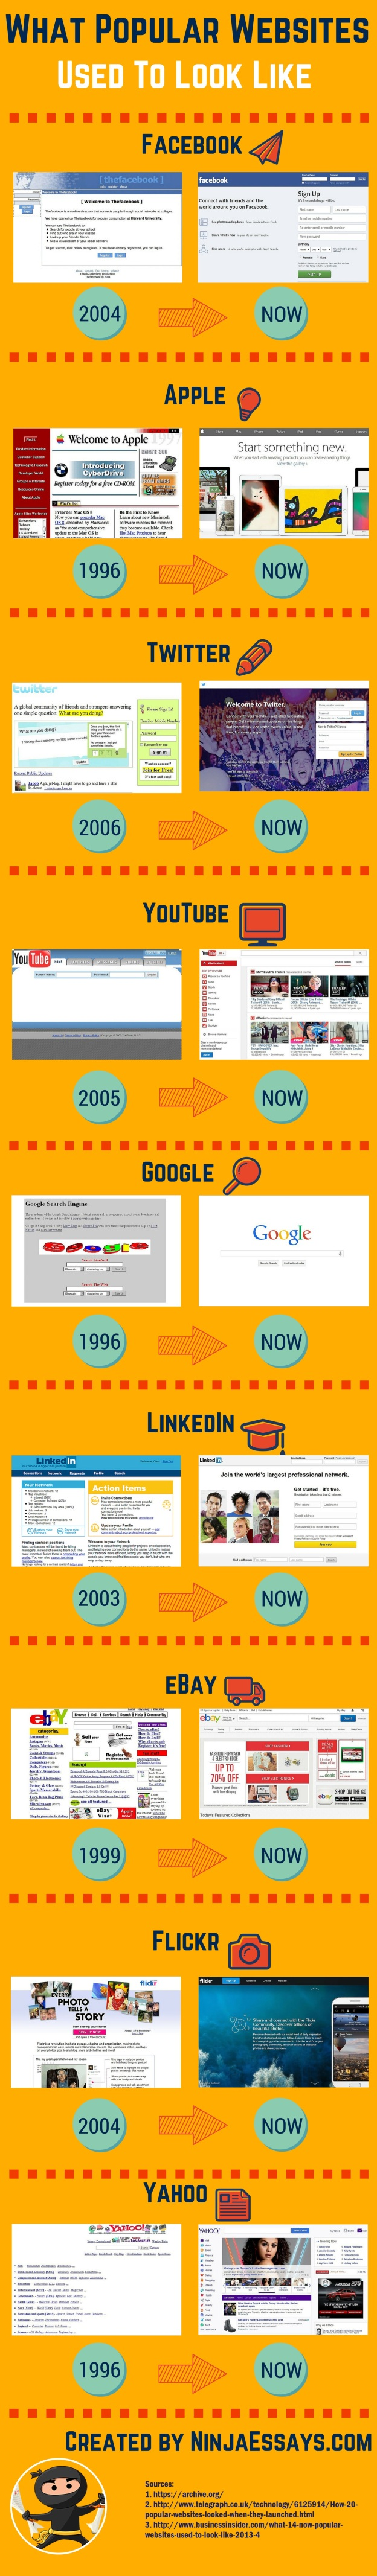 Do you remember what Facebook, YouTube and Google looked like years ago?